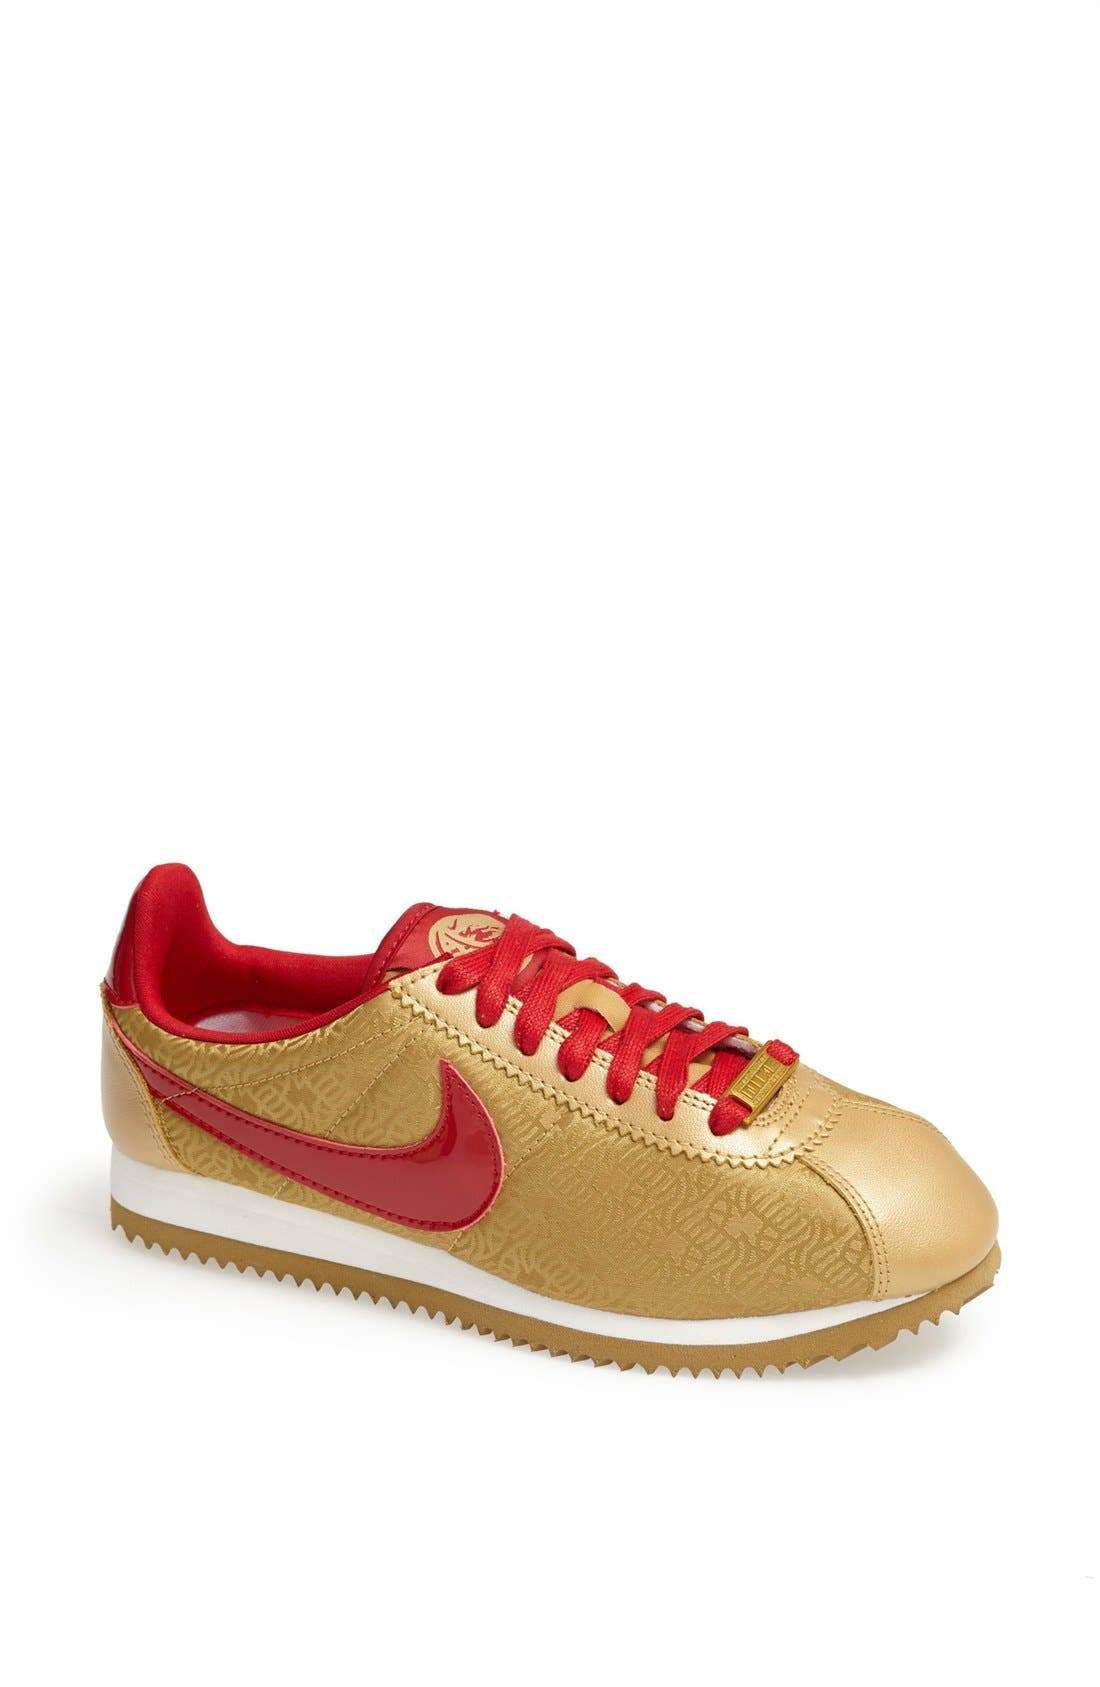 Main Image - Nike 'Classic Cortez - Year of the Horse' Sneaker (Women)